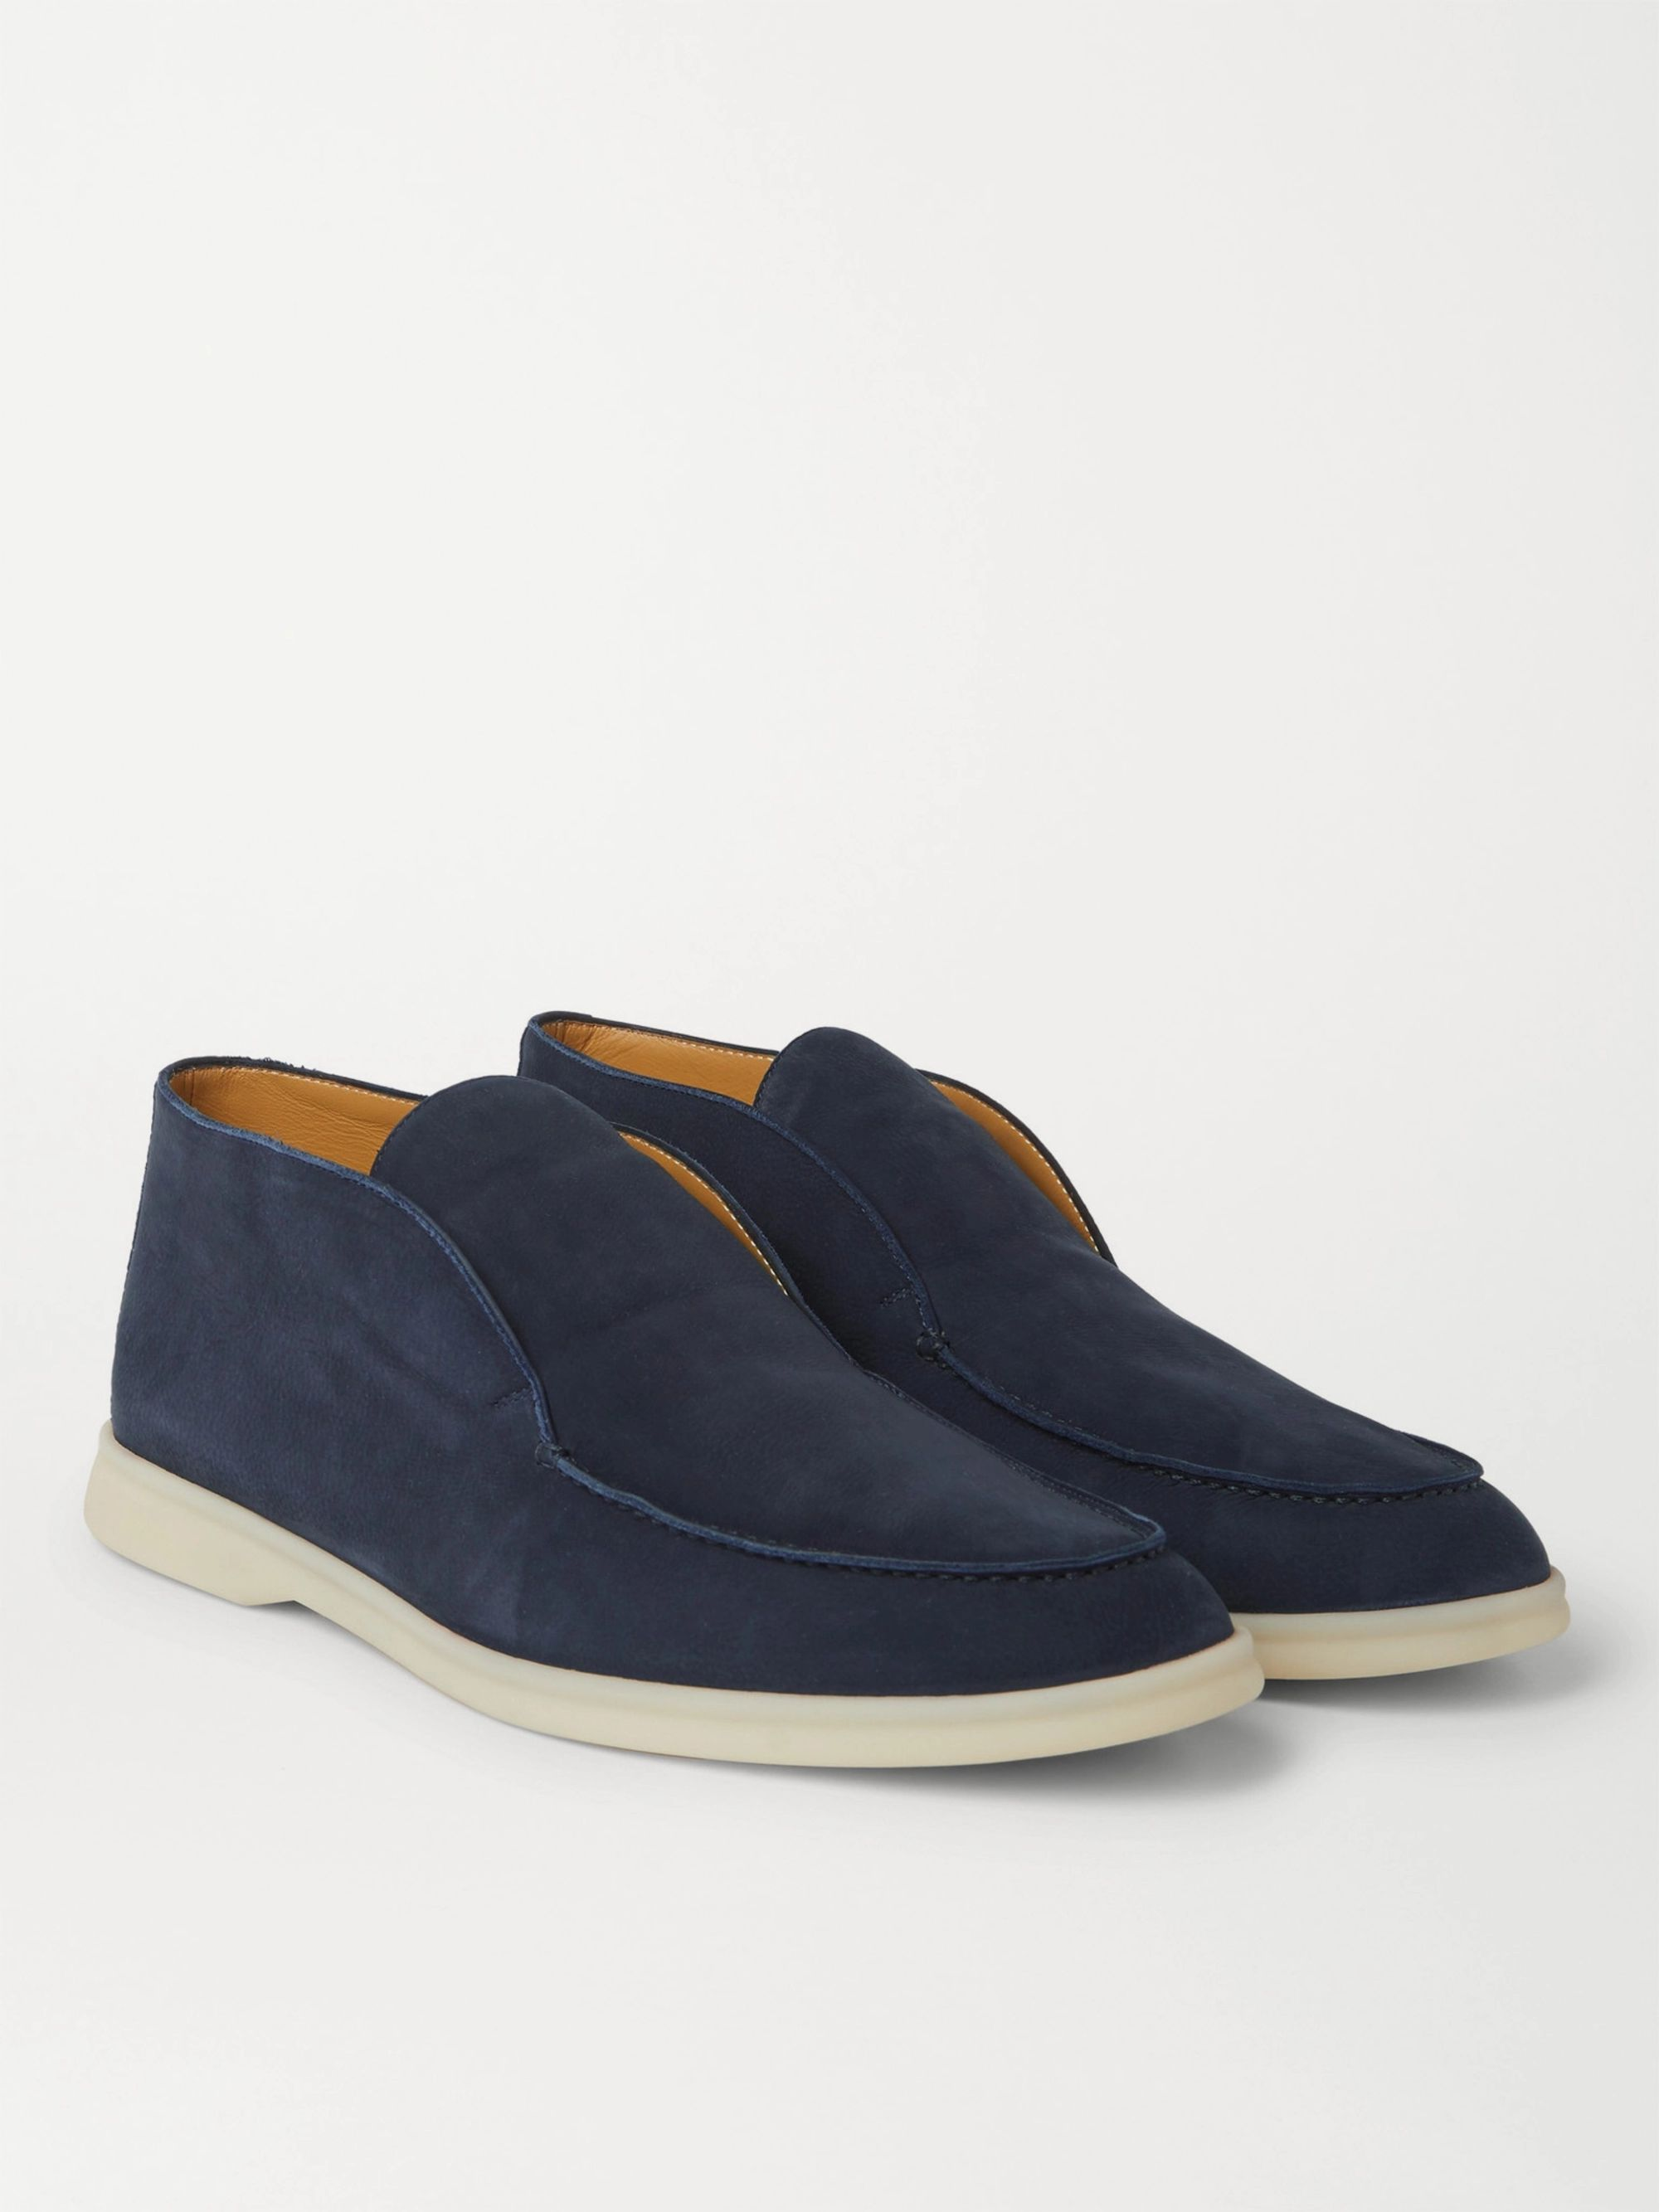 Loro Piana Open Walk Nubuck Boots